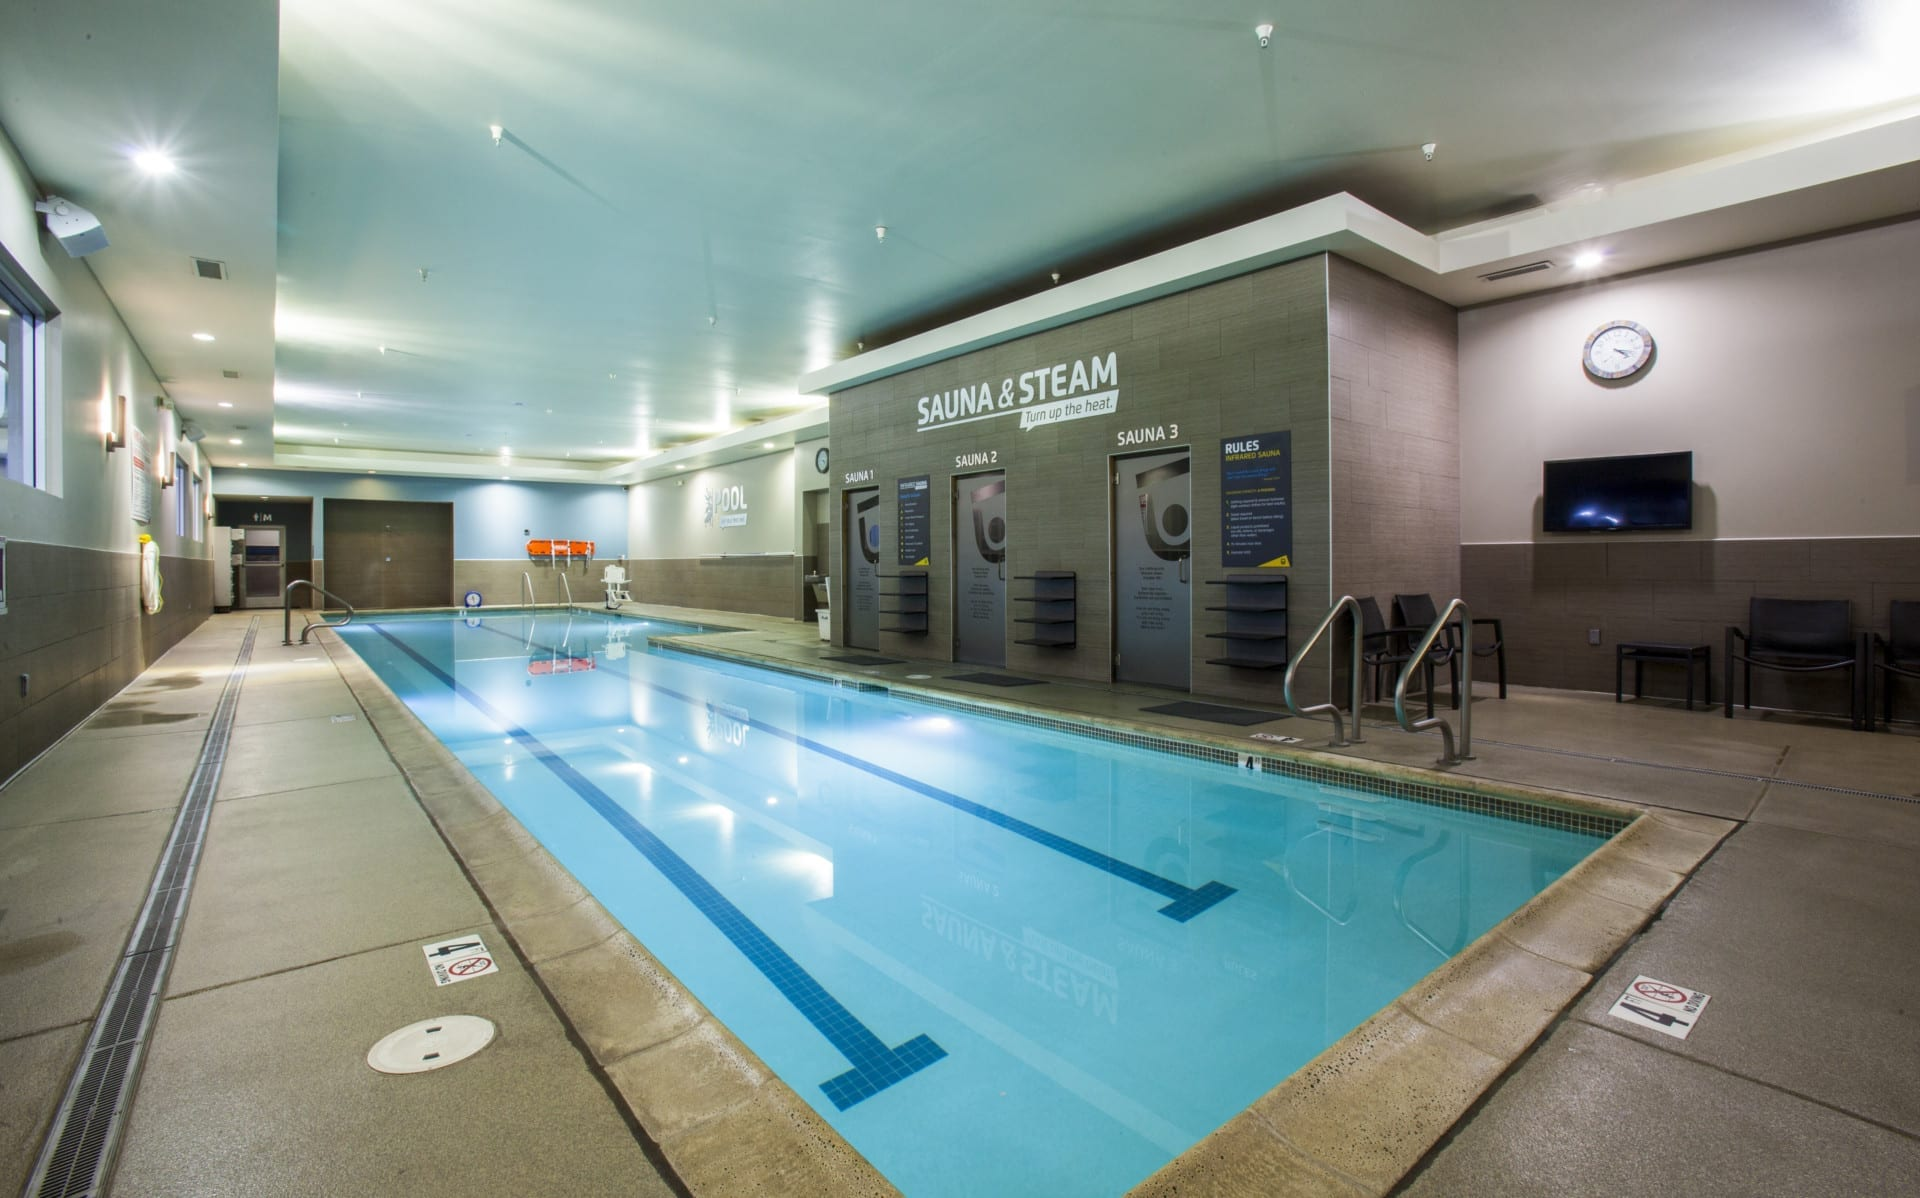 7 Benefits of Using a Steam Room